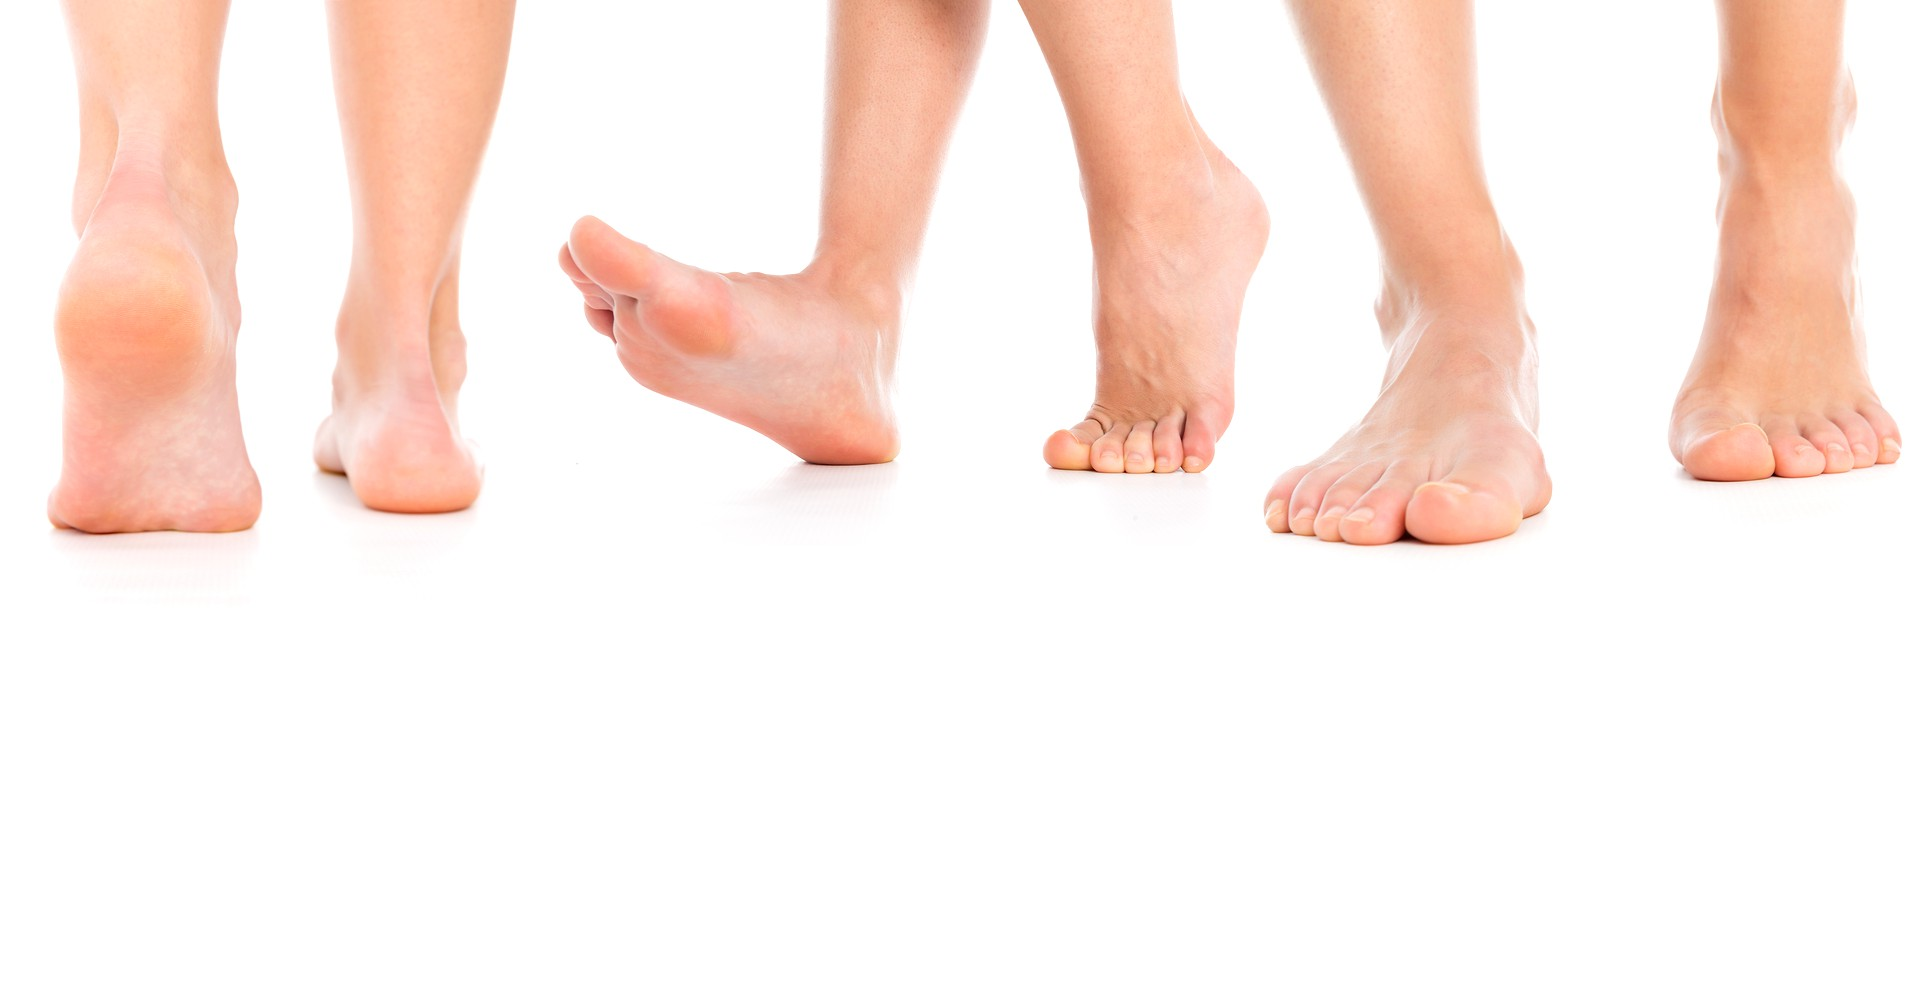 Laser Fungal Nail Treatment edmonton Alberta